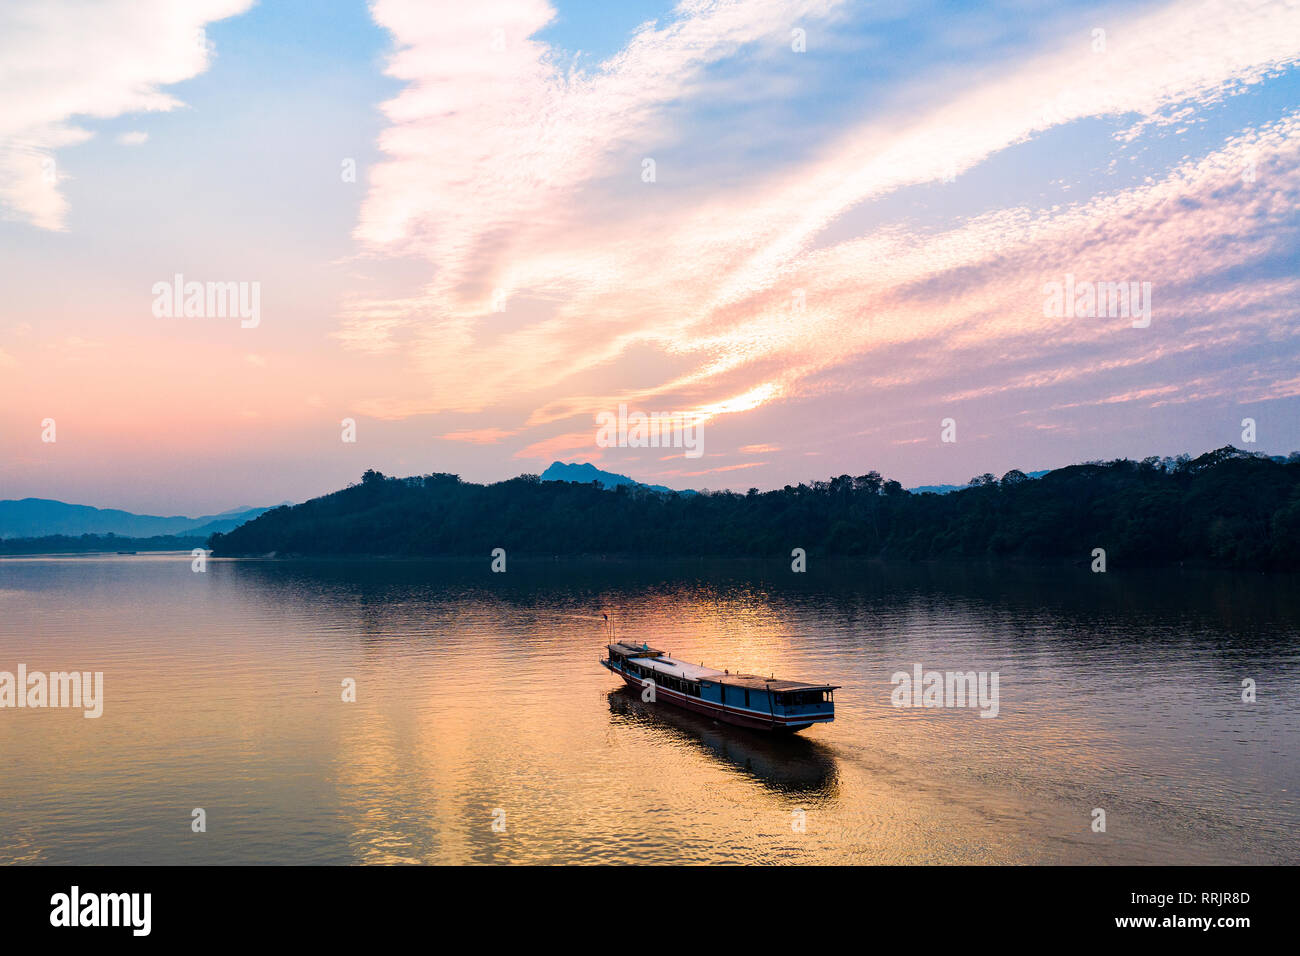 (View from above) Stunning aerial view of a tourists boat sailing on the Mekong river at sunset, Luang Prabang, Laos. Stock Photo